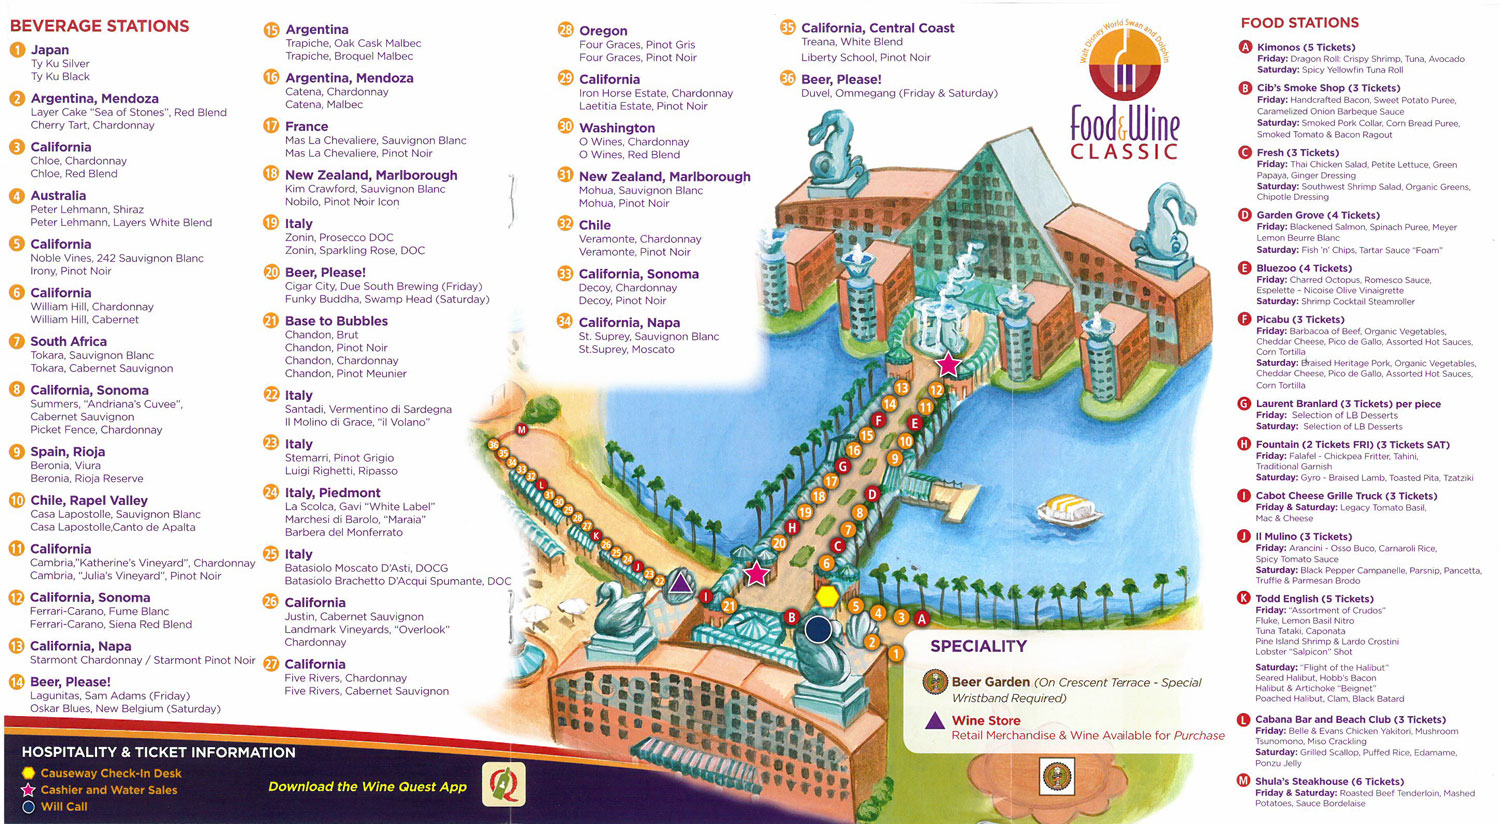 Walt disney world swan and dolphin fifth annual food wine classic 2014 swan dolphin food wine classic map gumiabroncs Images